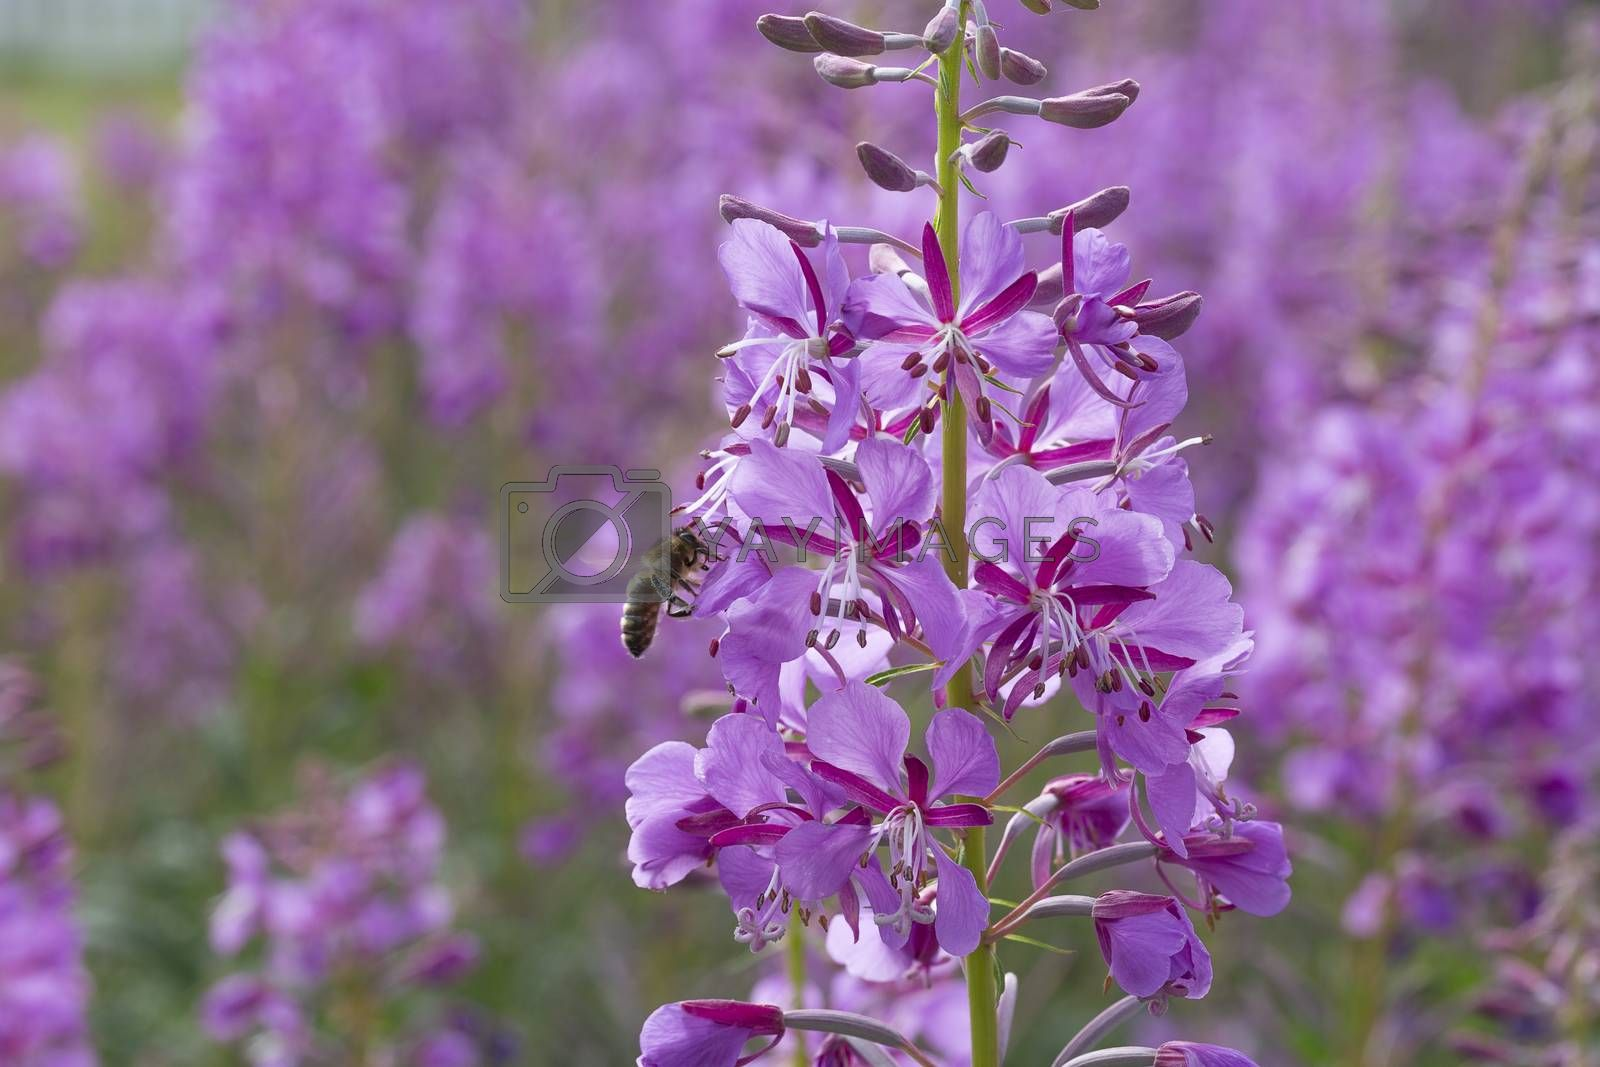 Fireweed Flowers with Bee close up.